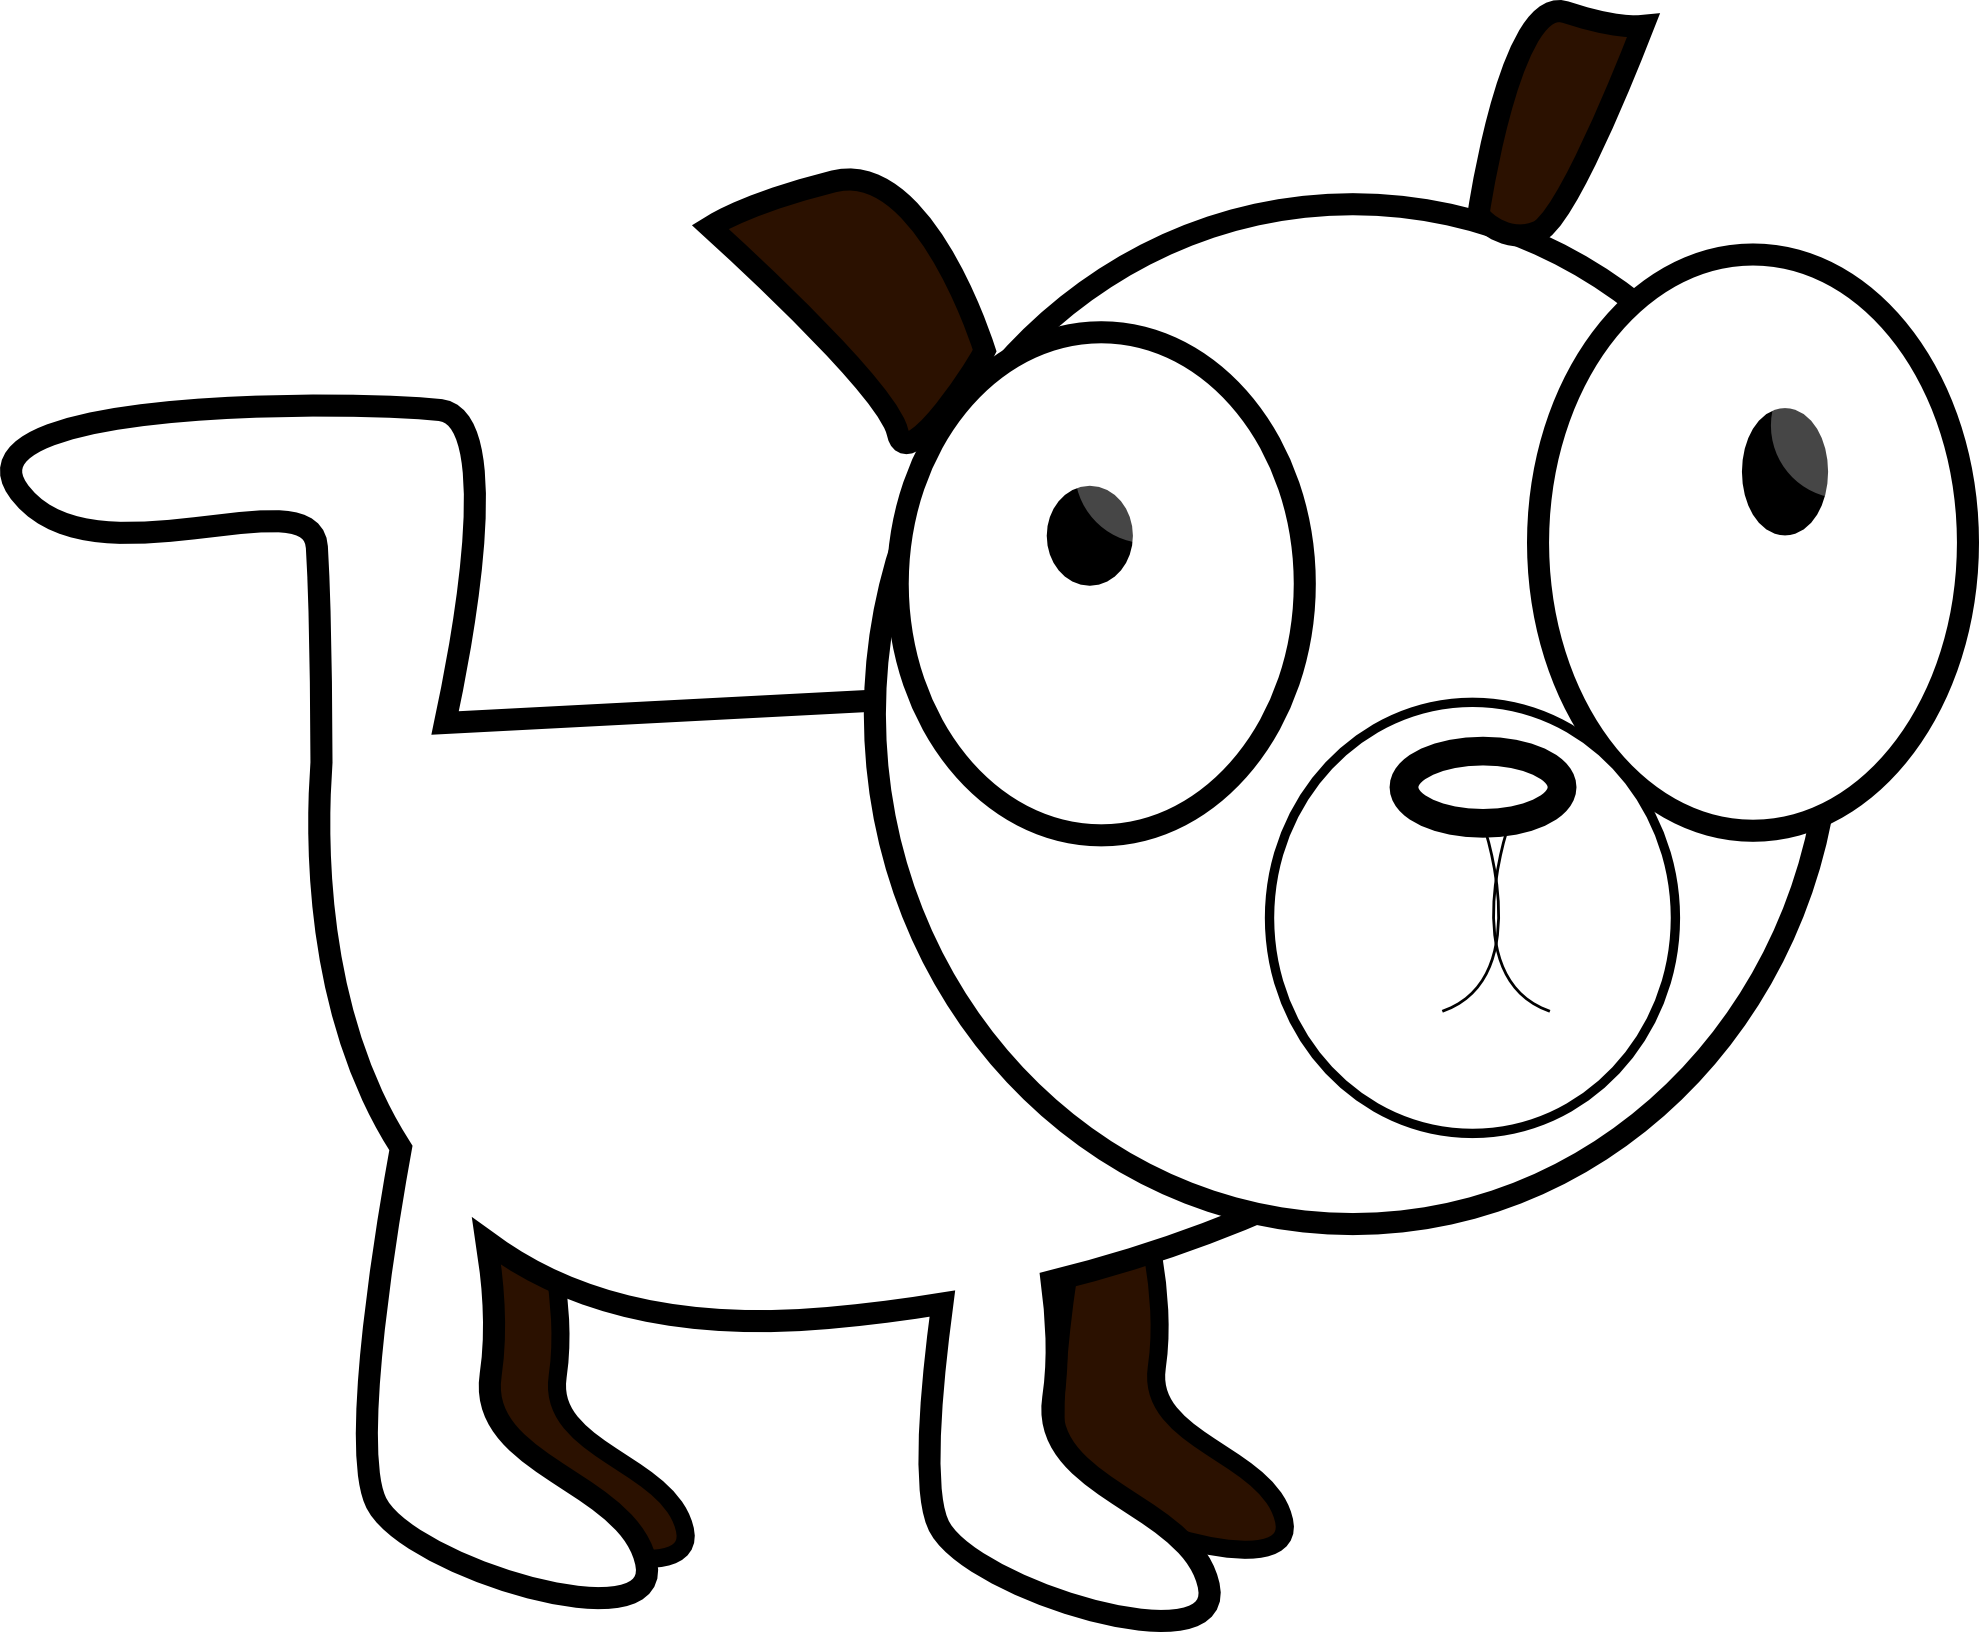 royalty free stock Dog dawg line panda. Adobe clipart black and white